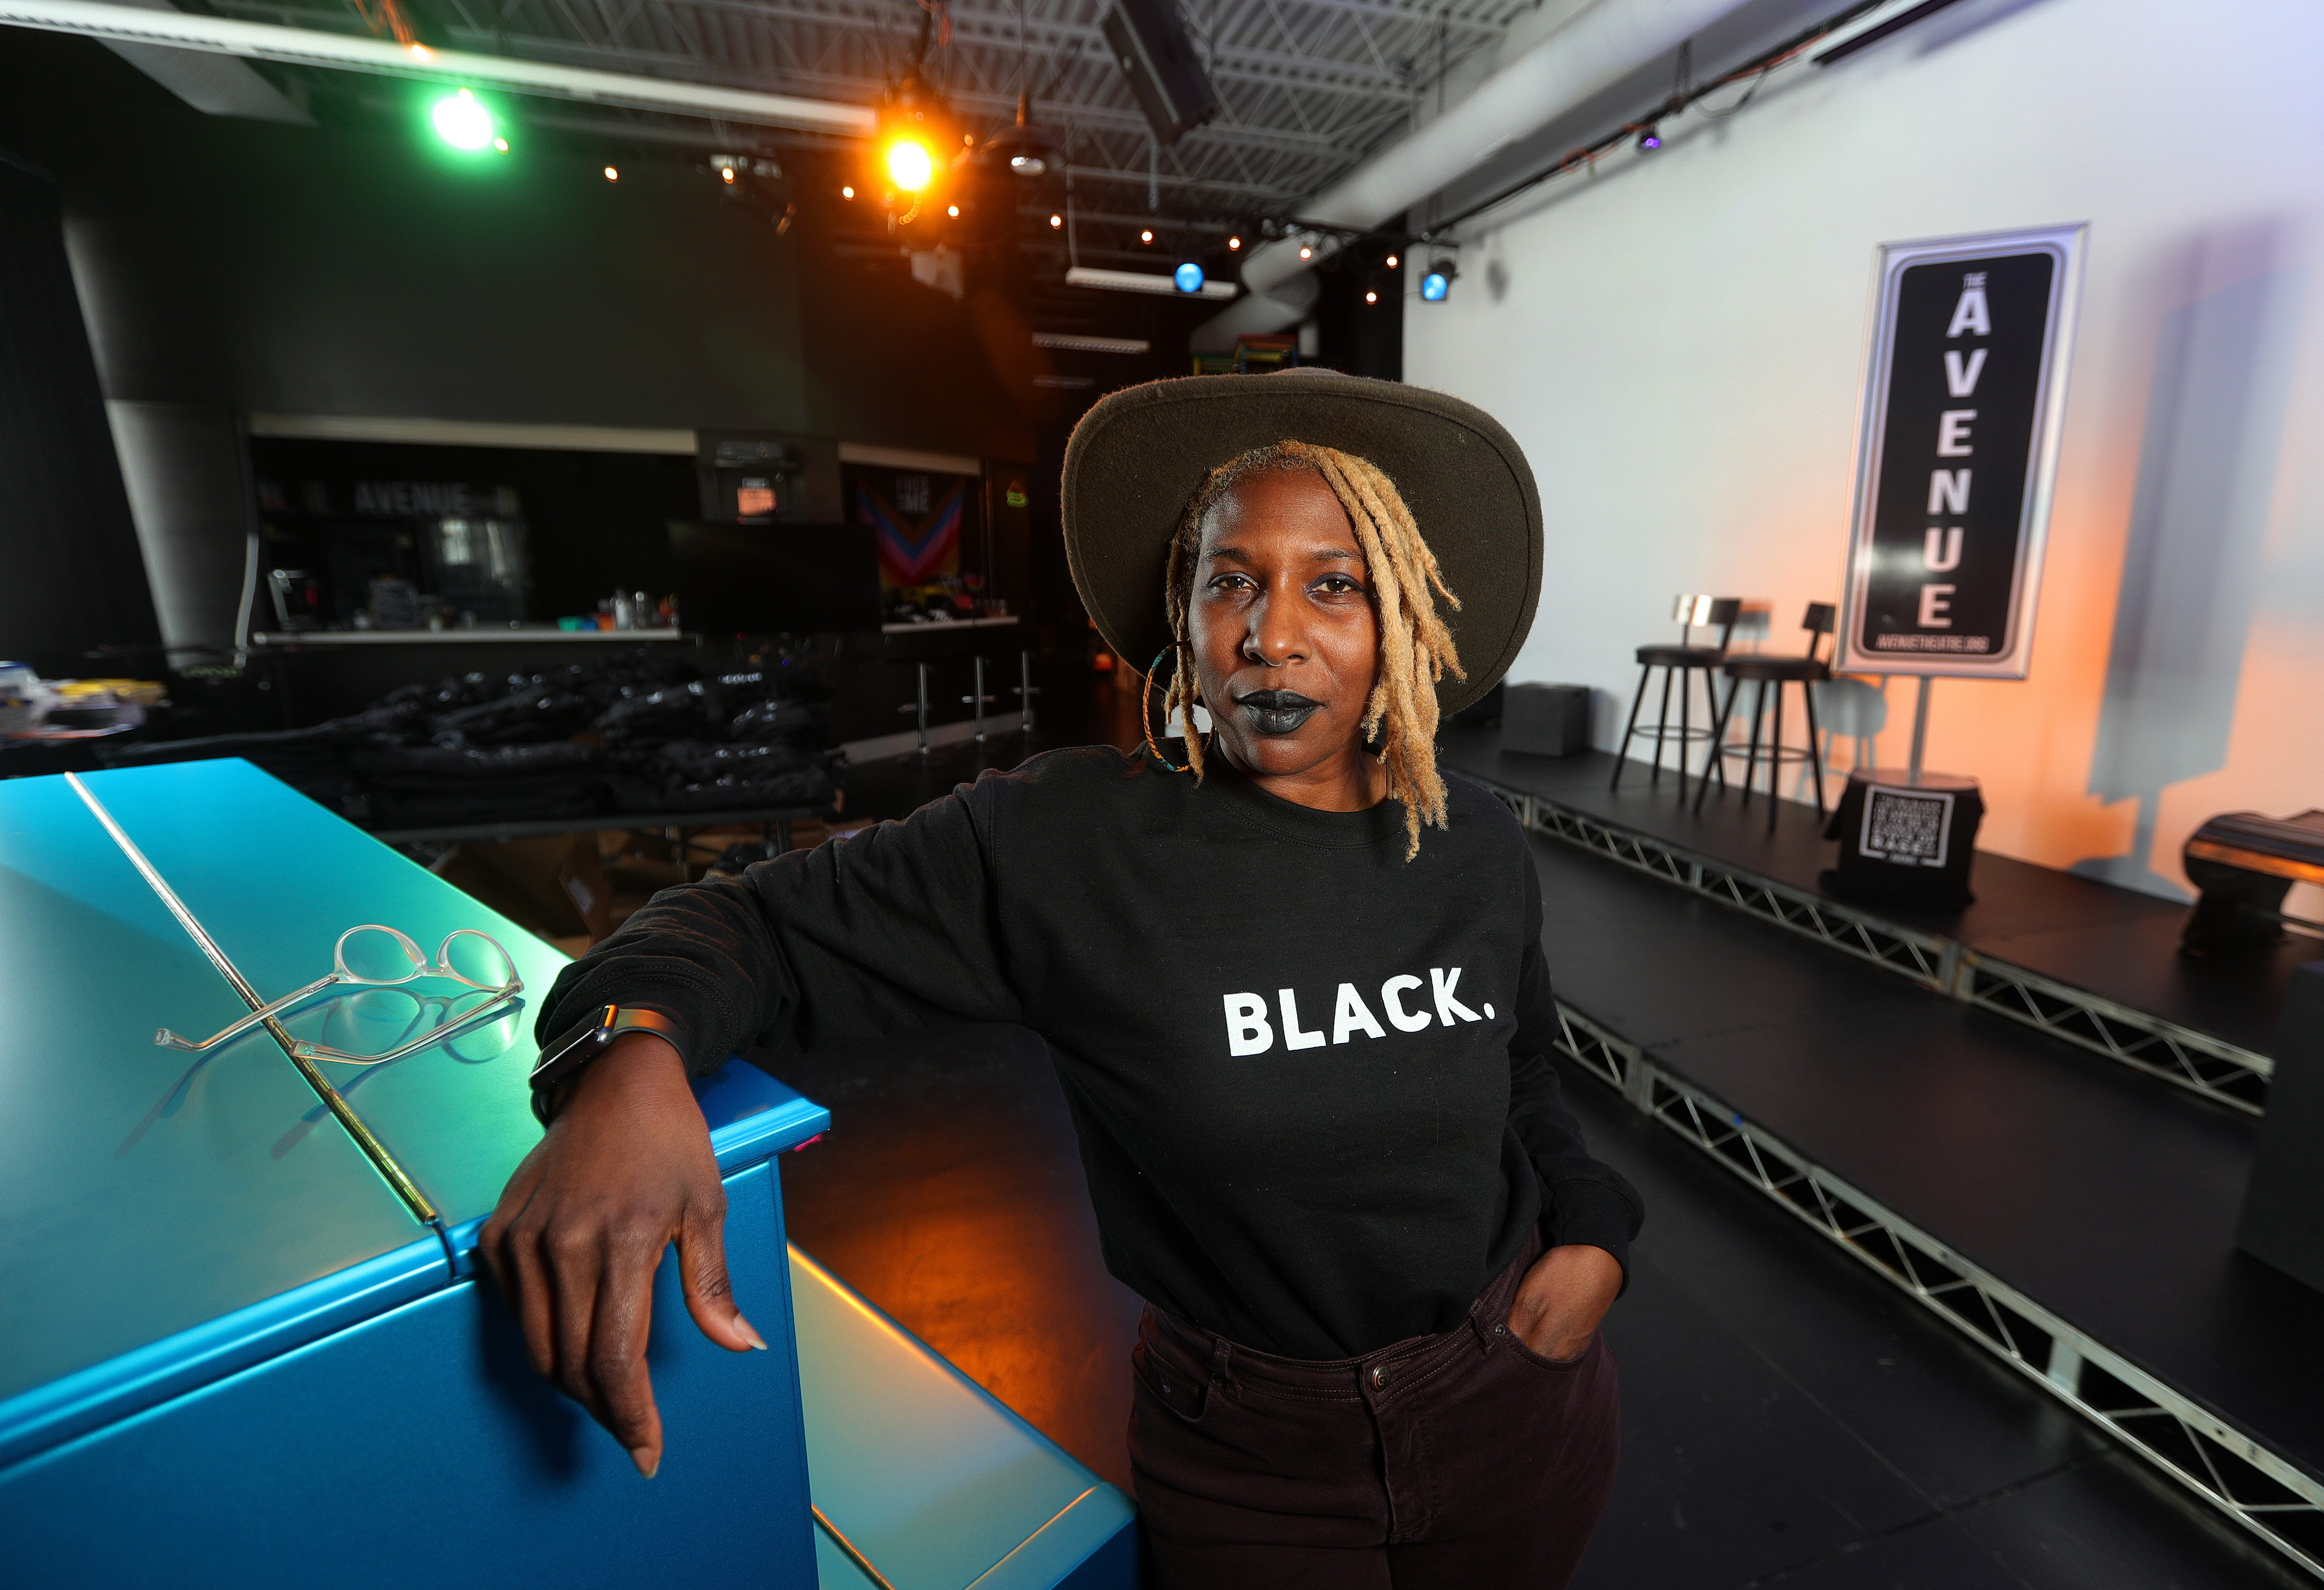 Reenah Golden is the founder of Avenue Black Box Theatre on Joseph Avenue in Rochester, New York. The inclusive community theater leans into social justice and various artistic narratives.